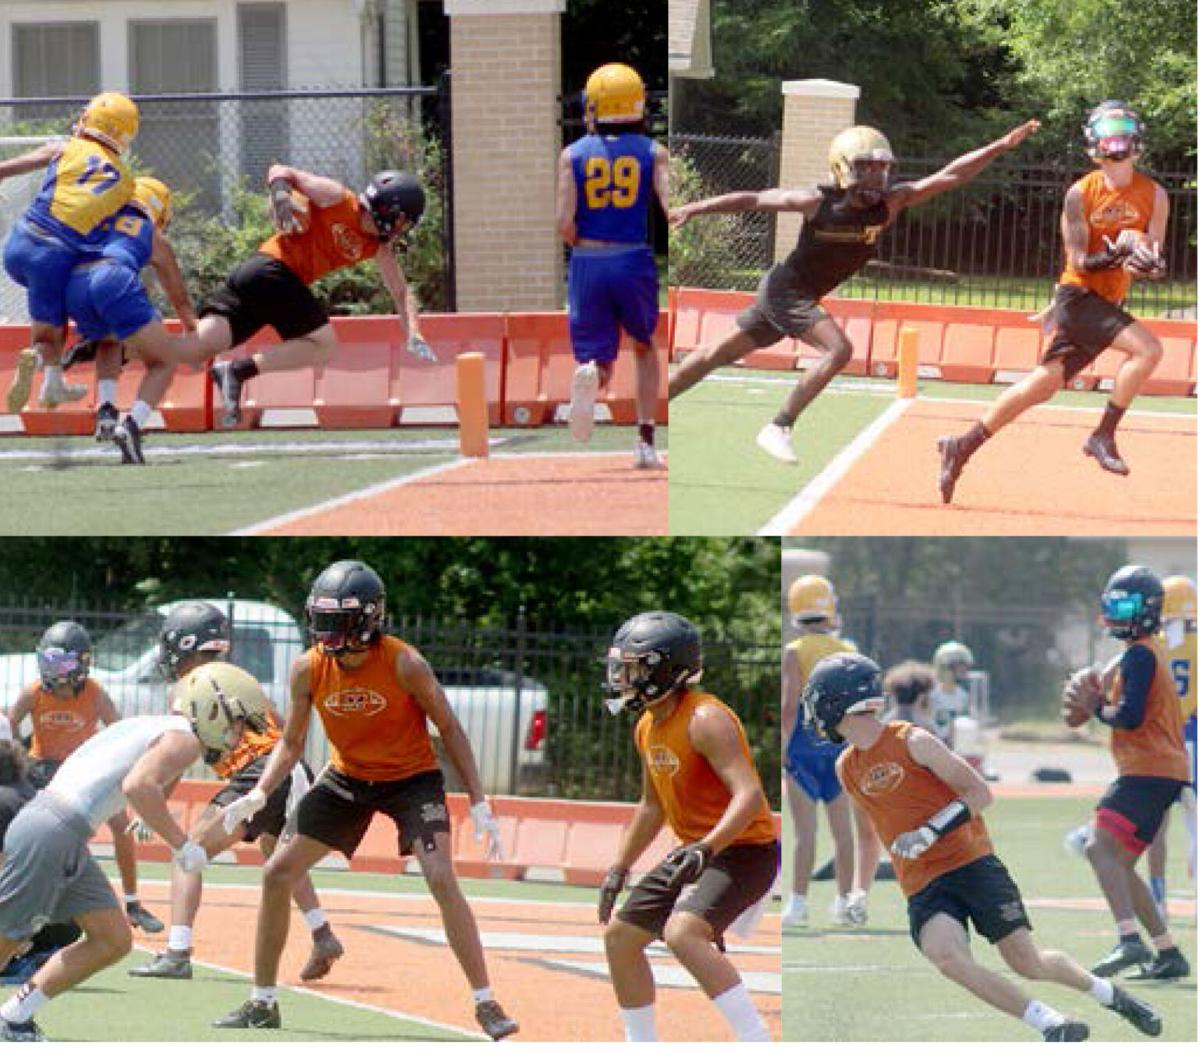 James King Memorial 7-on-7 Tourney Leopards in action pic.